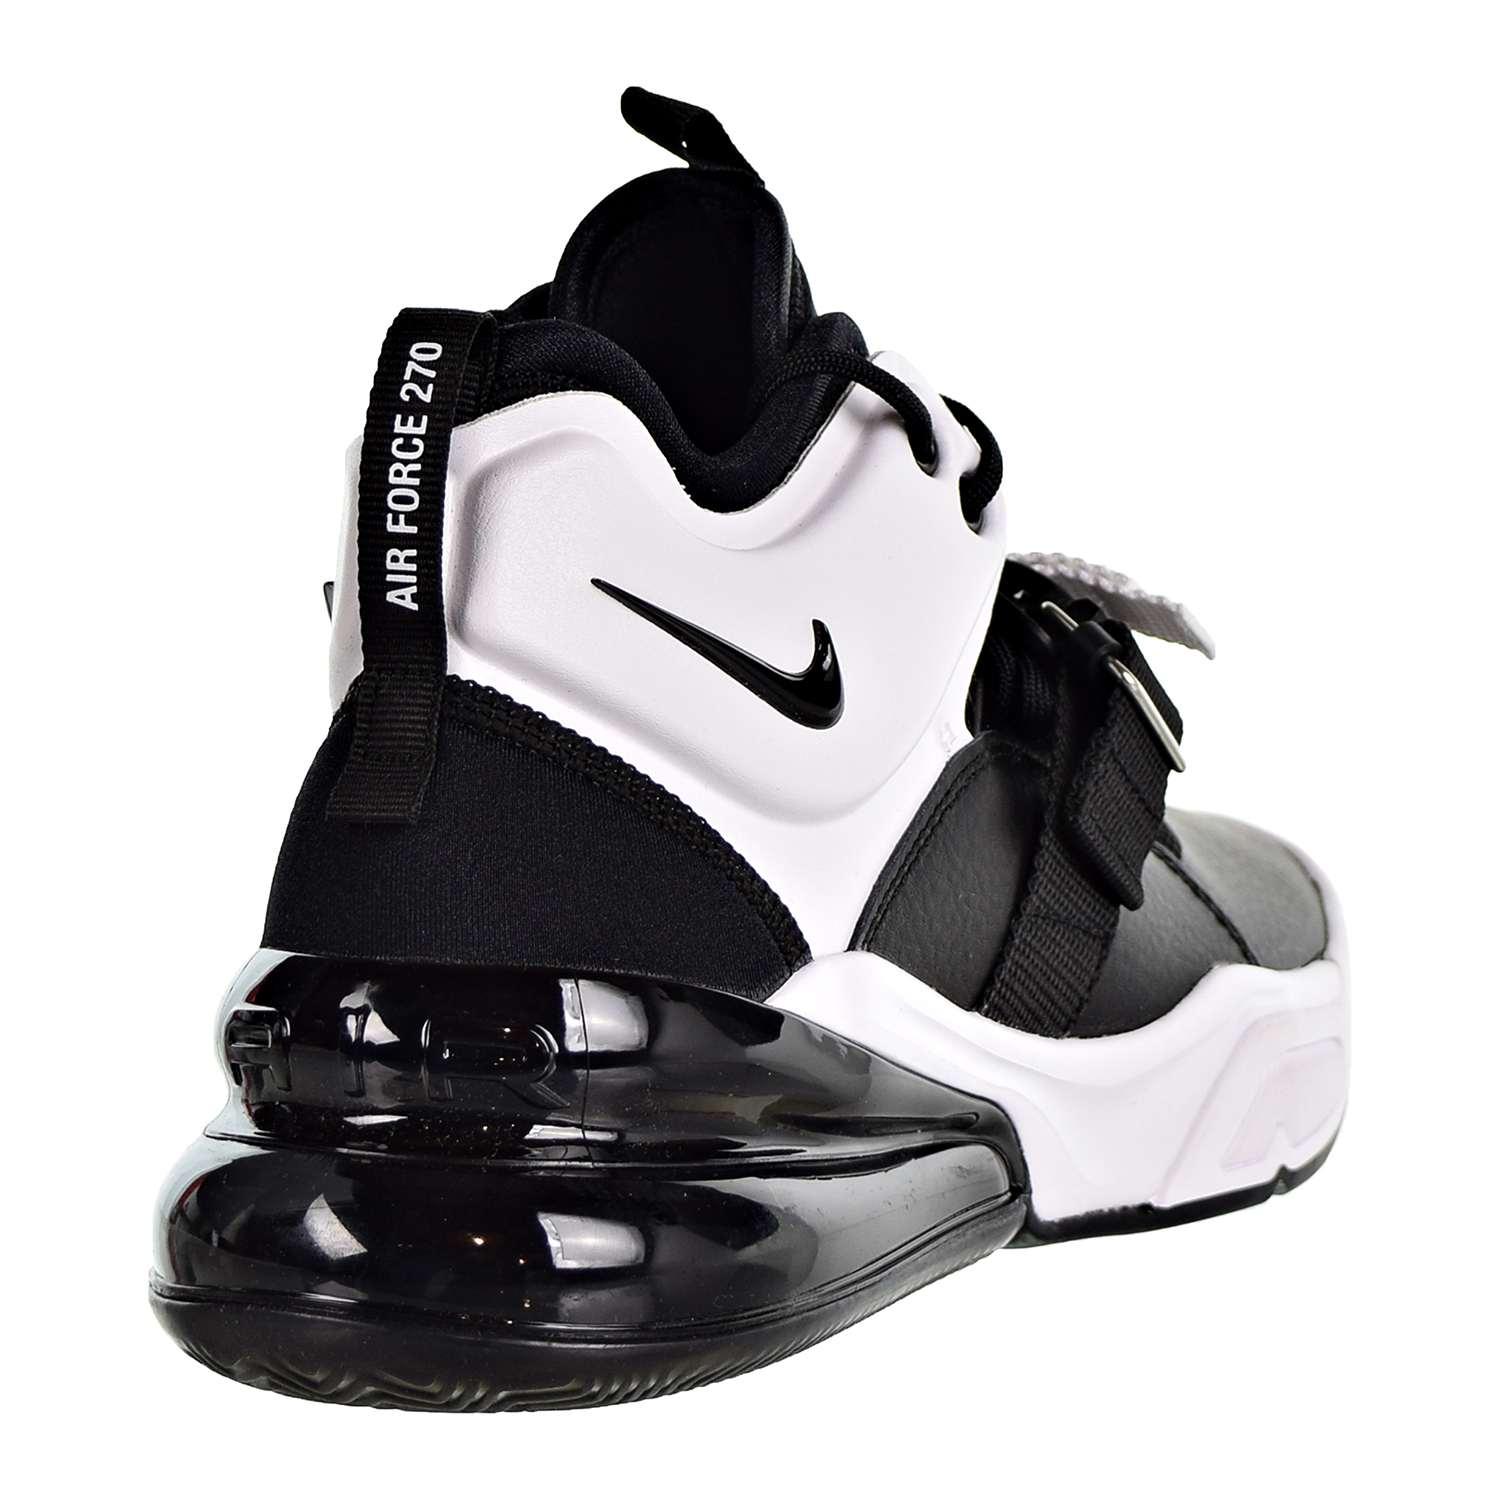 Details about Nike Air Force 270 Big Kids' Shoes Black White Anthracite AJ8208 001